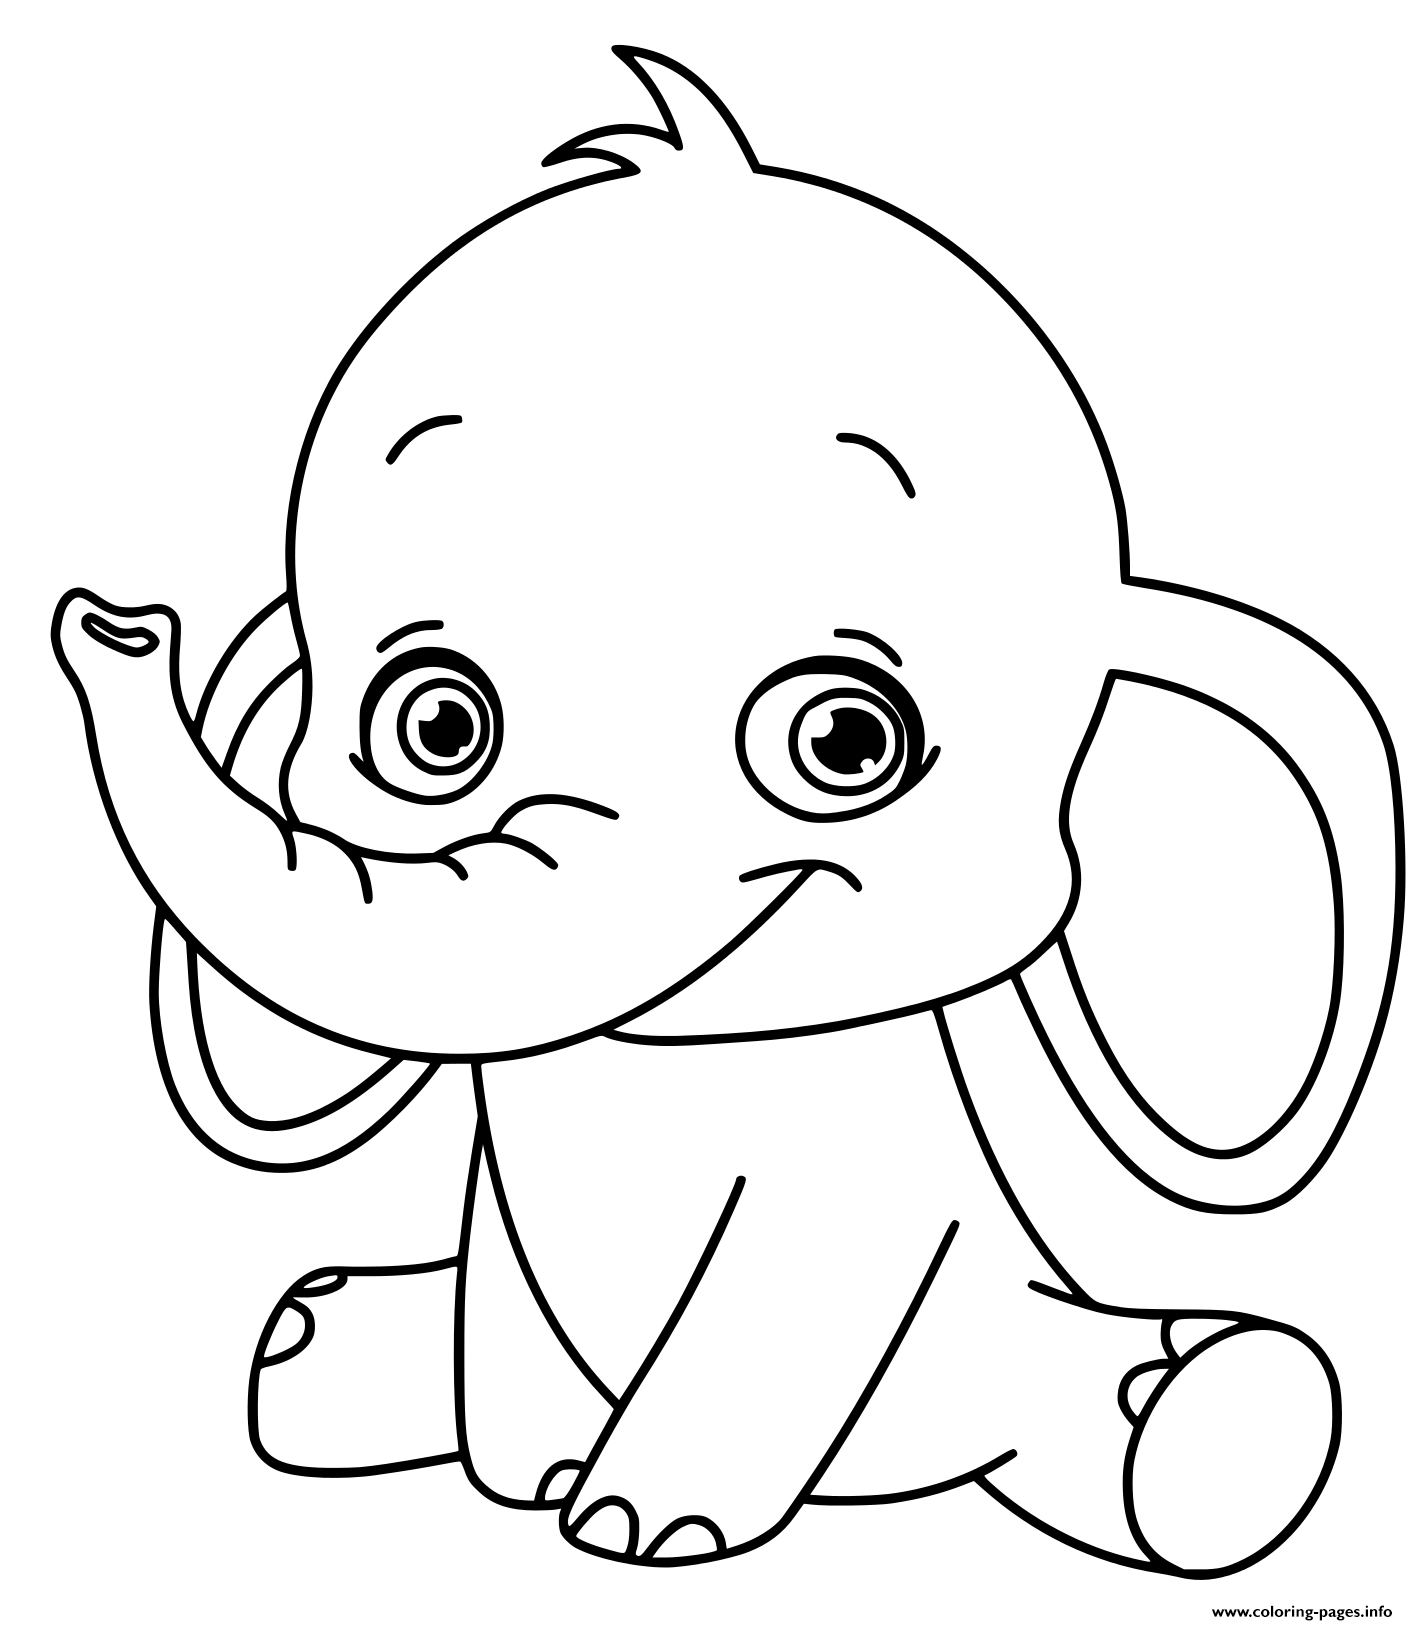 elephant images for colouring baby elephant kids coloring pages printable colouring elephant for images